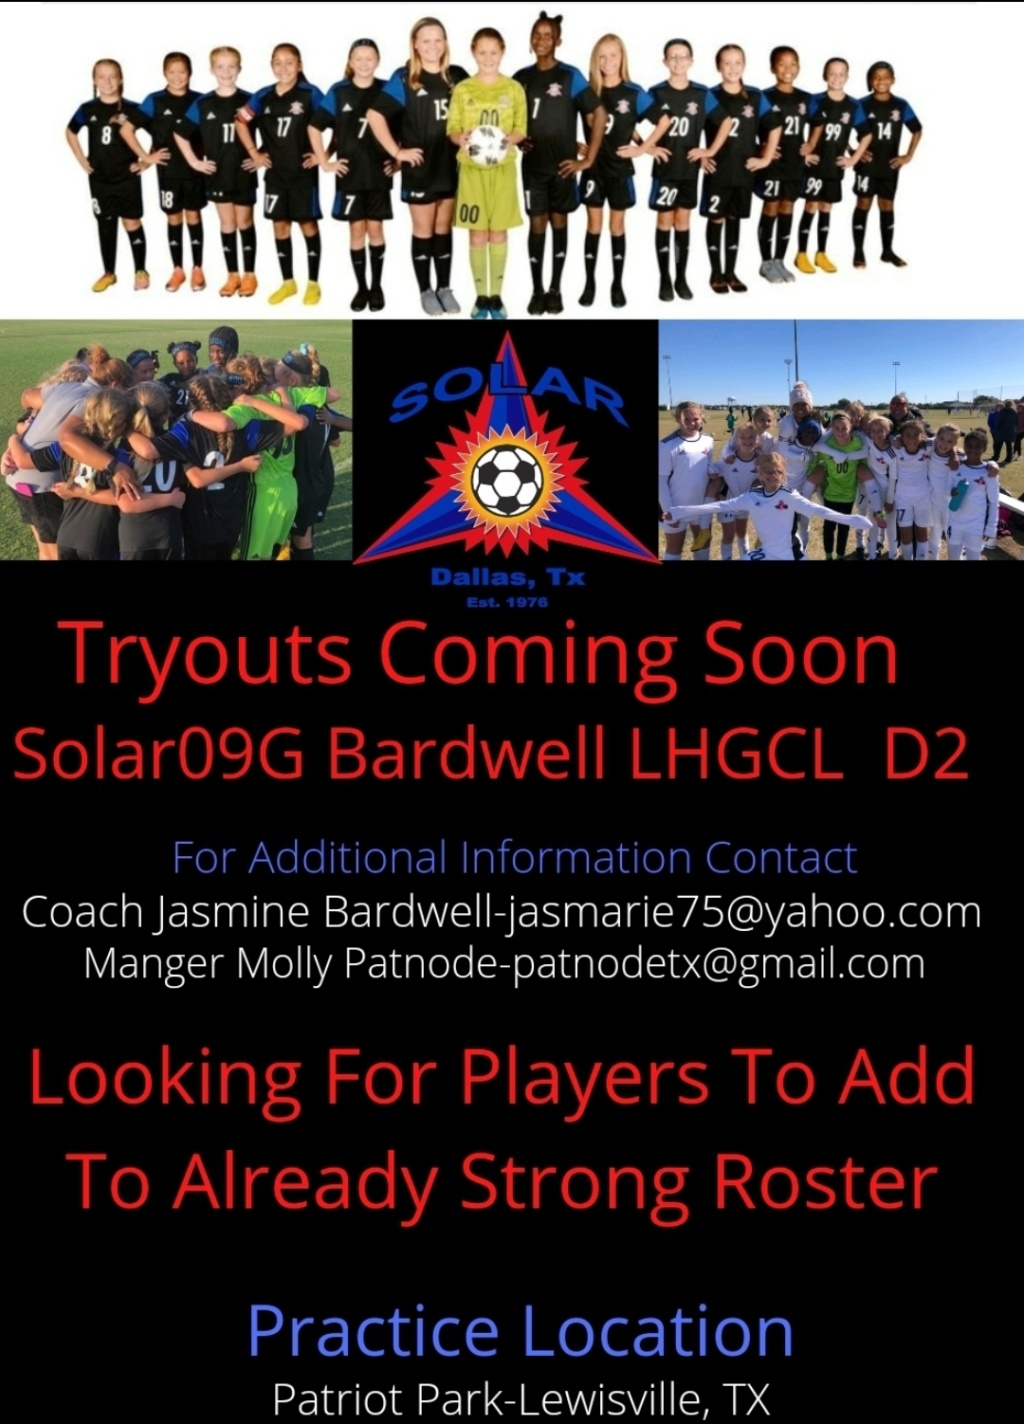 Solar09G Bardwell Tryouts Coming Soon Screen15